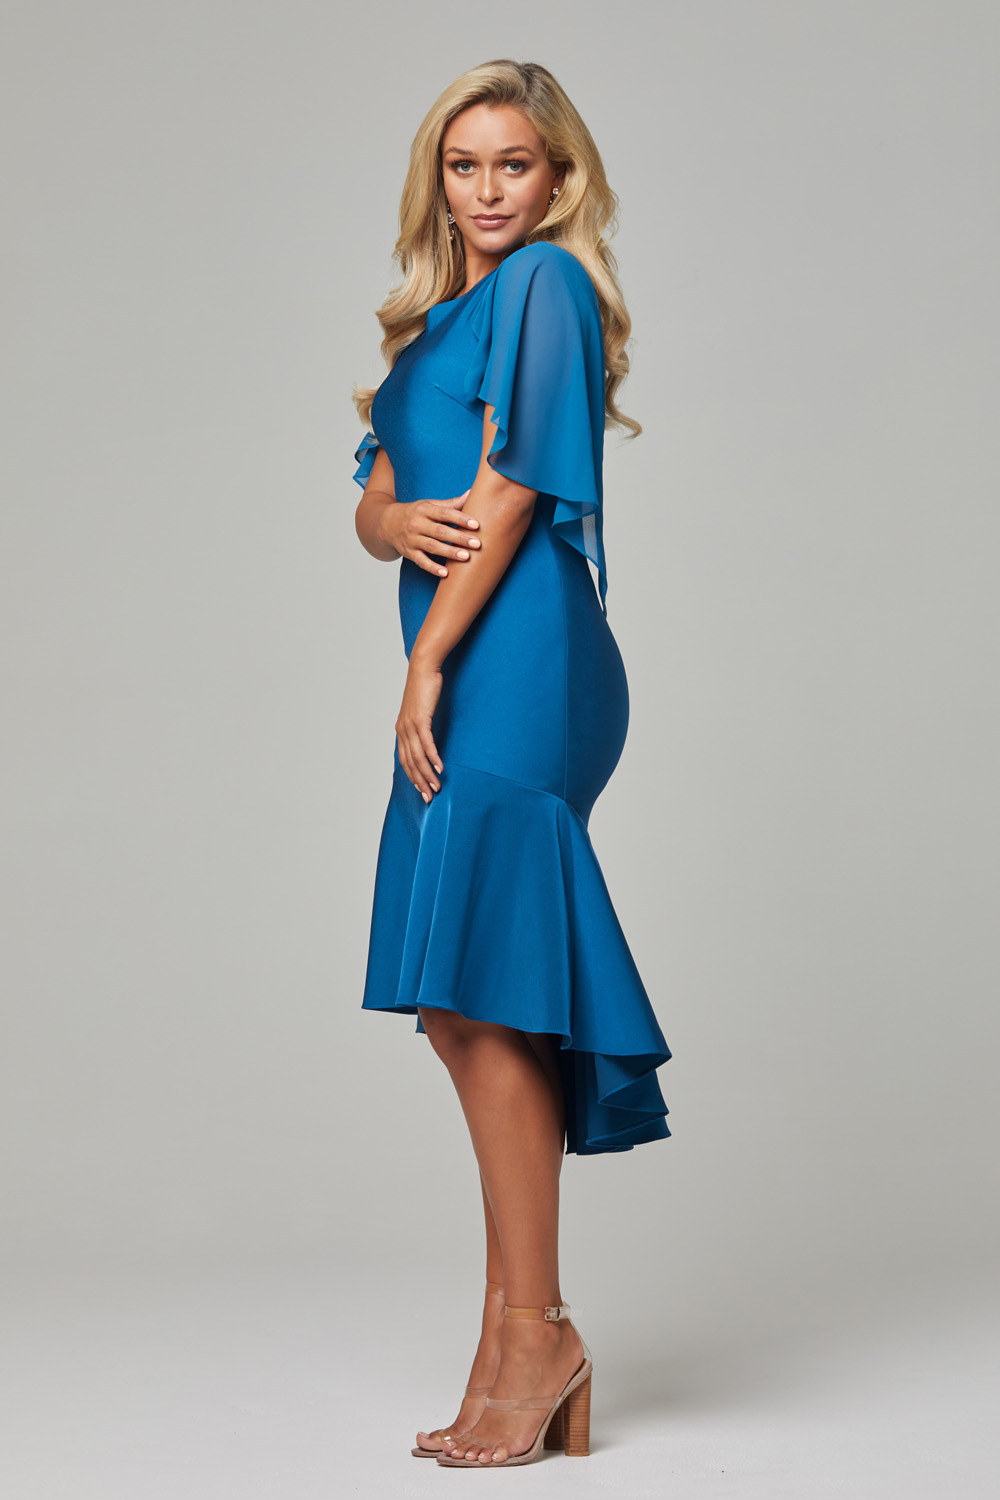 Evelyn Cocktail Dress teal